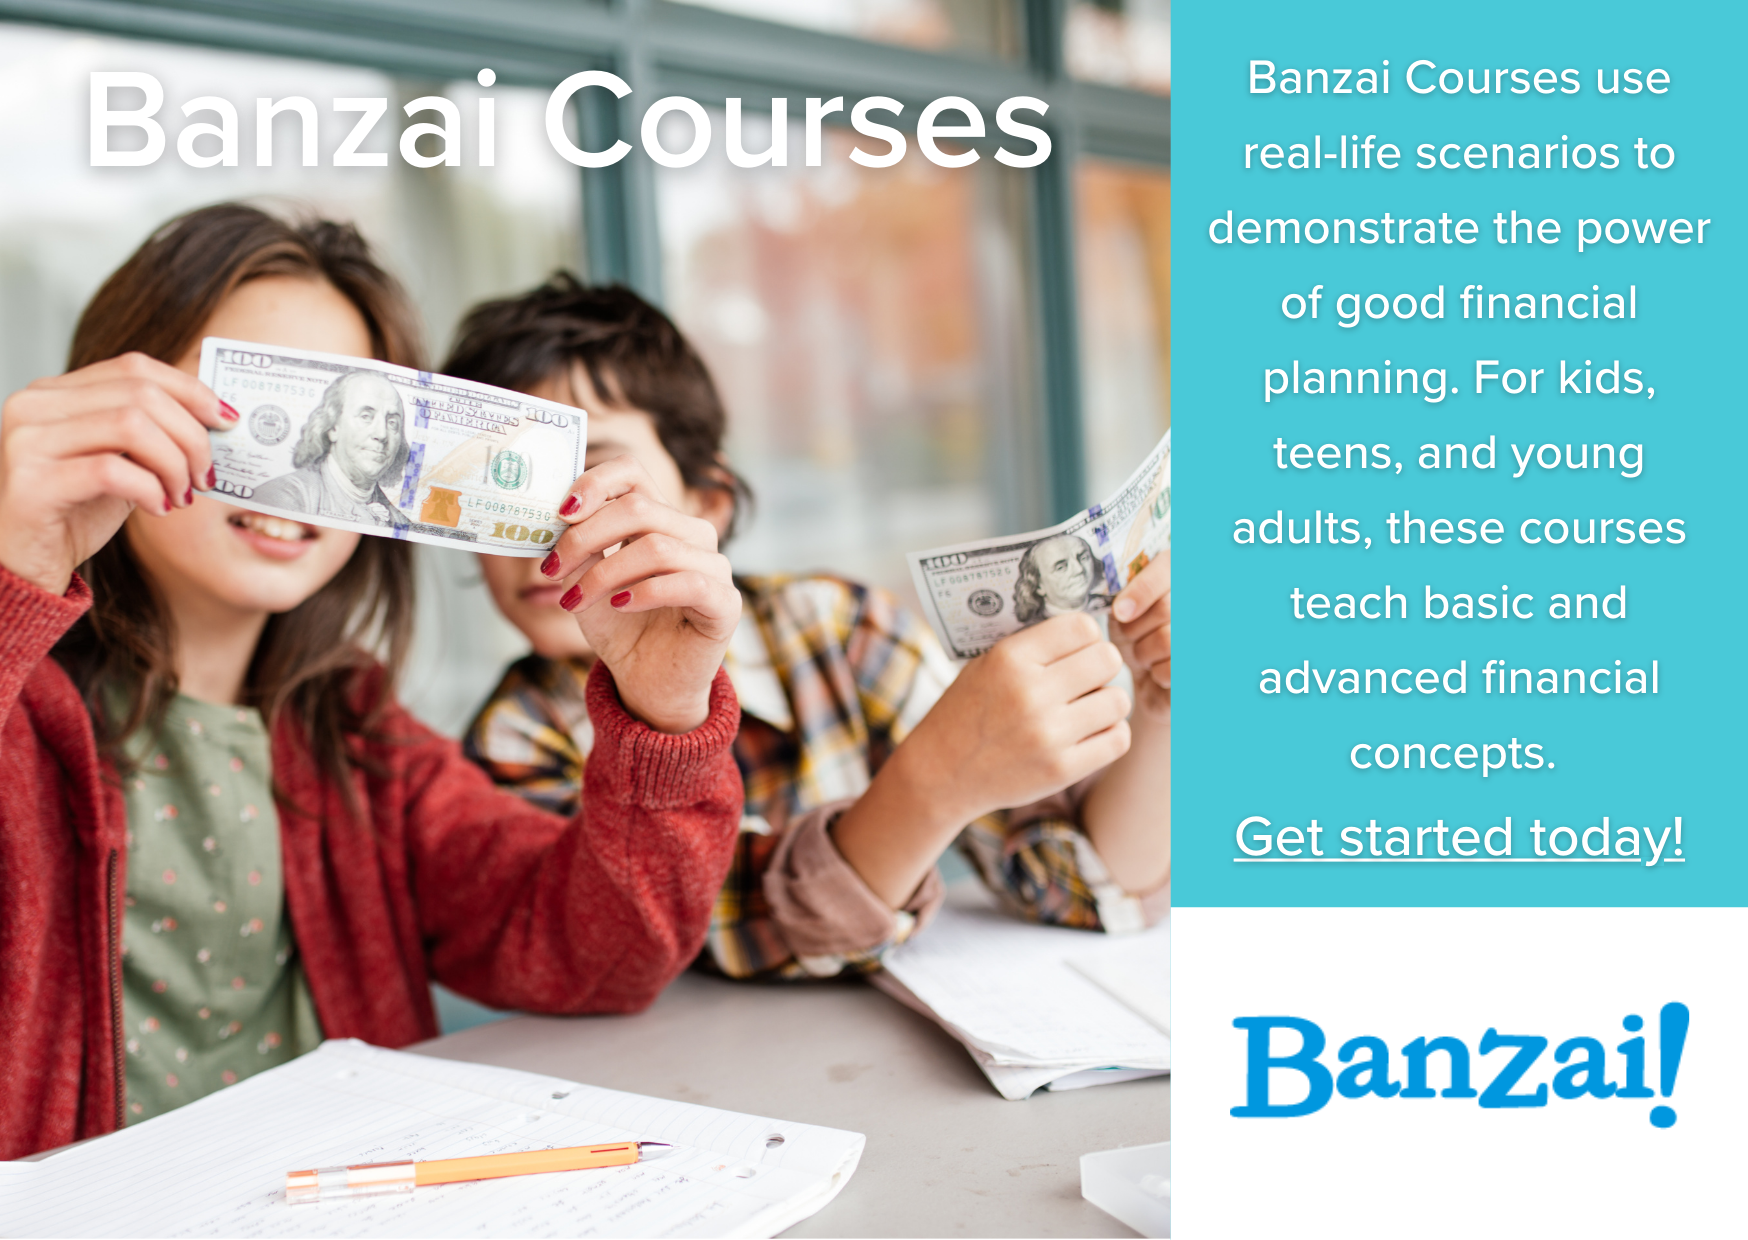 Banzai Courses: Banzai Courses use real-life scenarios to demonstrate the power of good financial planning. For kids, teens, and young adults, these courses teach basic and advanced financial concepts.  Get started today! Banzai logo